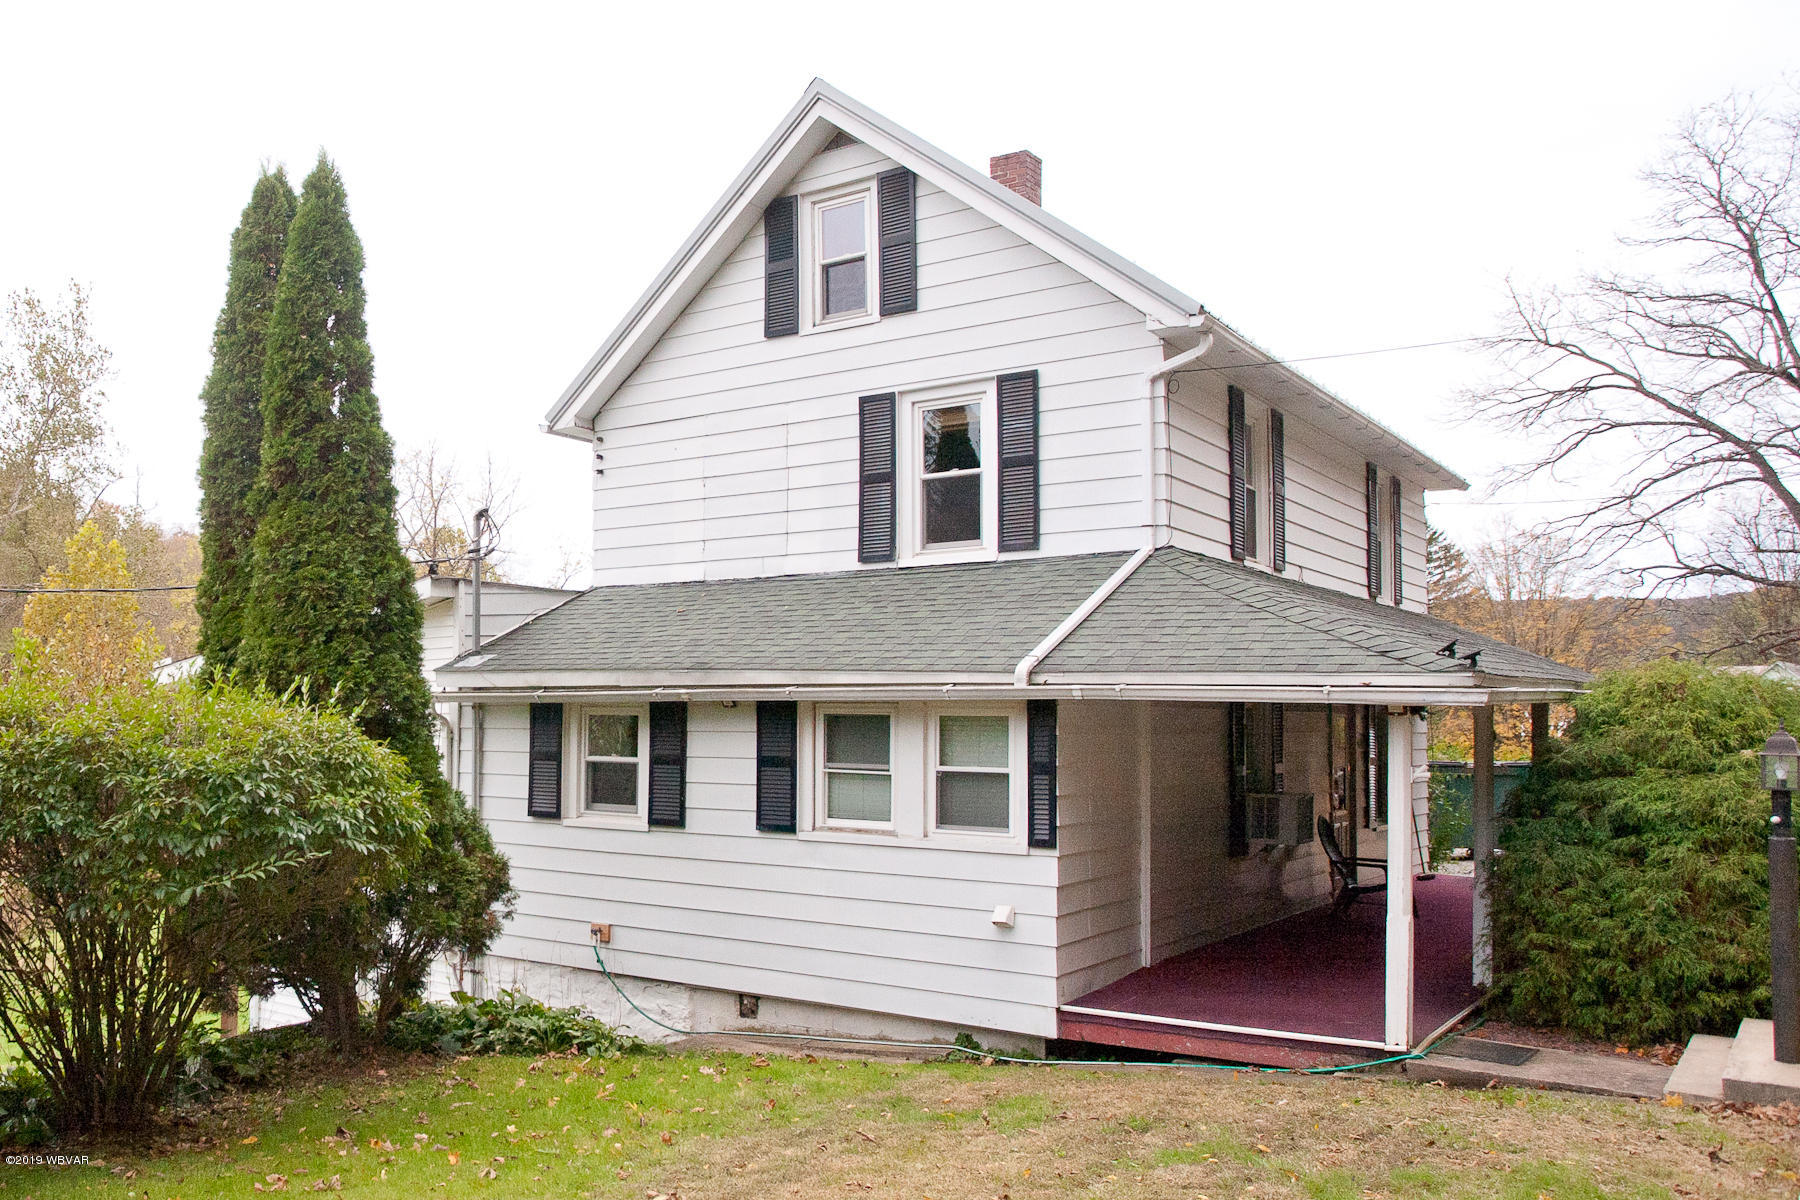 468 PA-864 HIGHWAY,Montoursville,PA 17754,3 Bedrooms Bedrooms,3 BathroomsBathrooms,Residential,PA-864,WB-88840